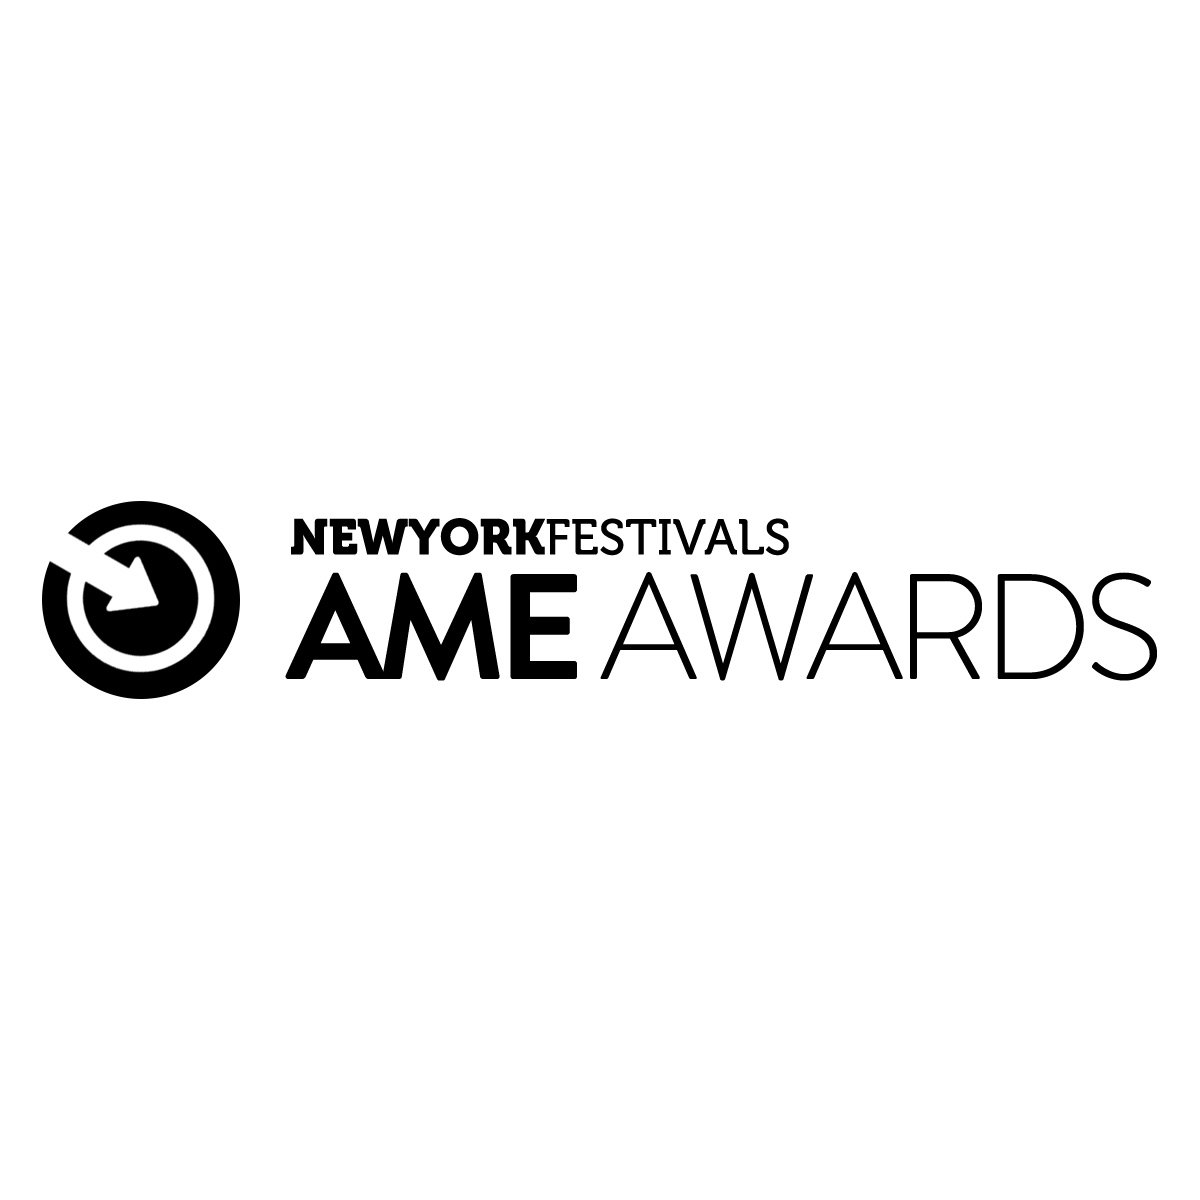 2019 New York Festivals AME Awards Open for Entries